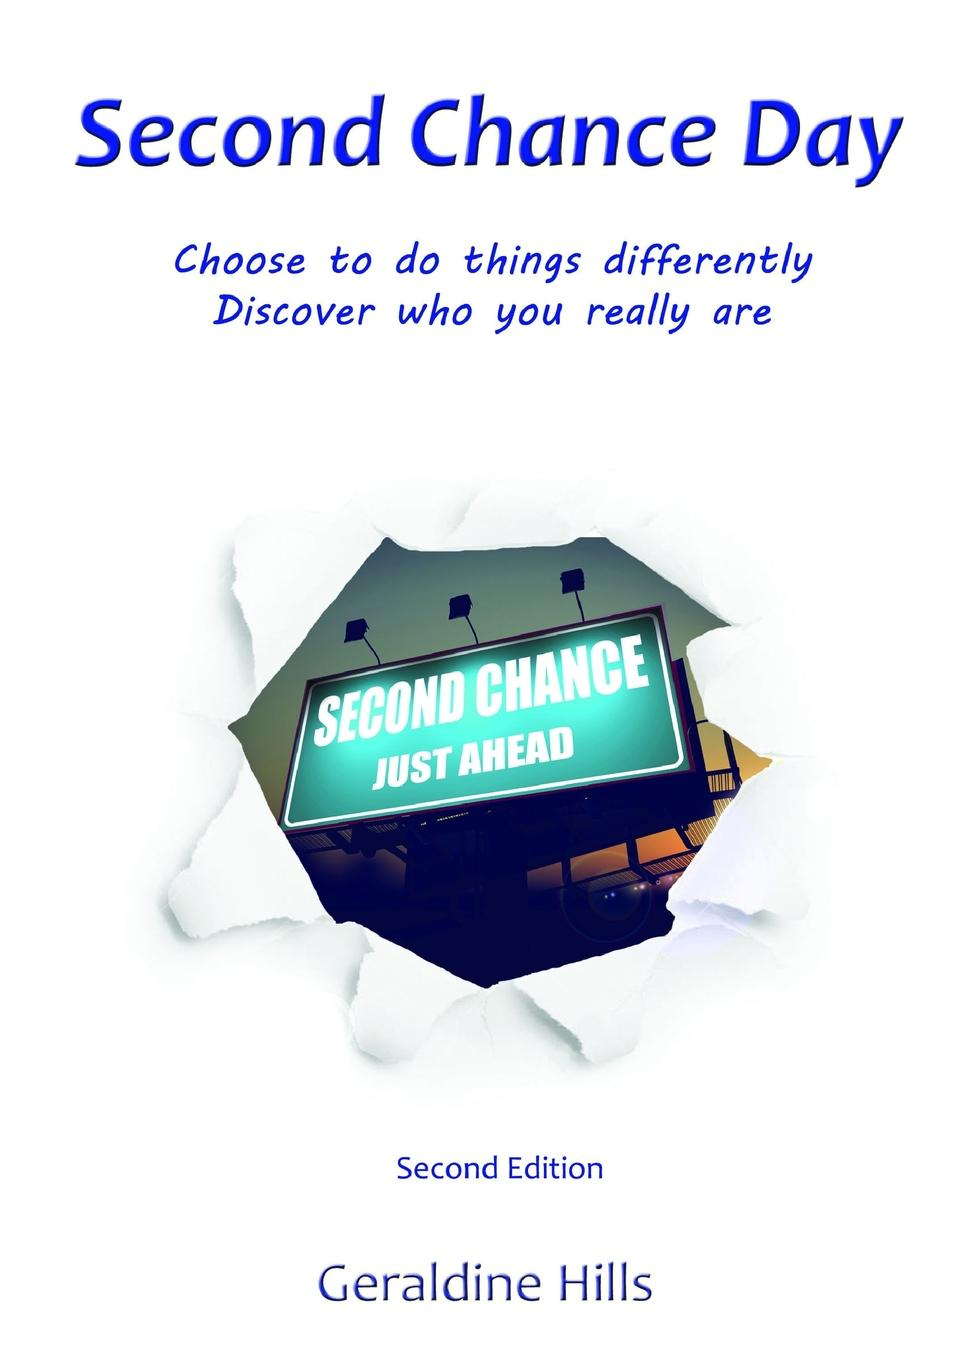 Geraldine Hills Second Chance Day (2nd Ed) over to you